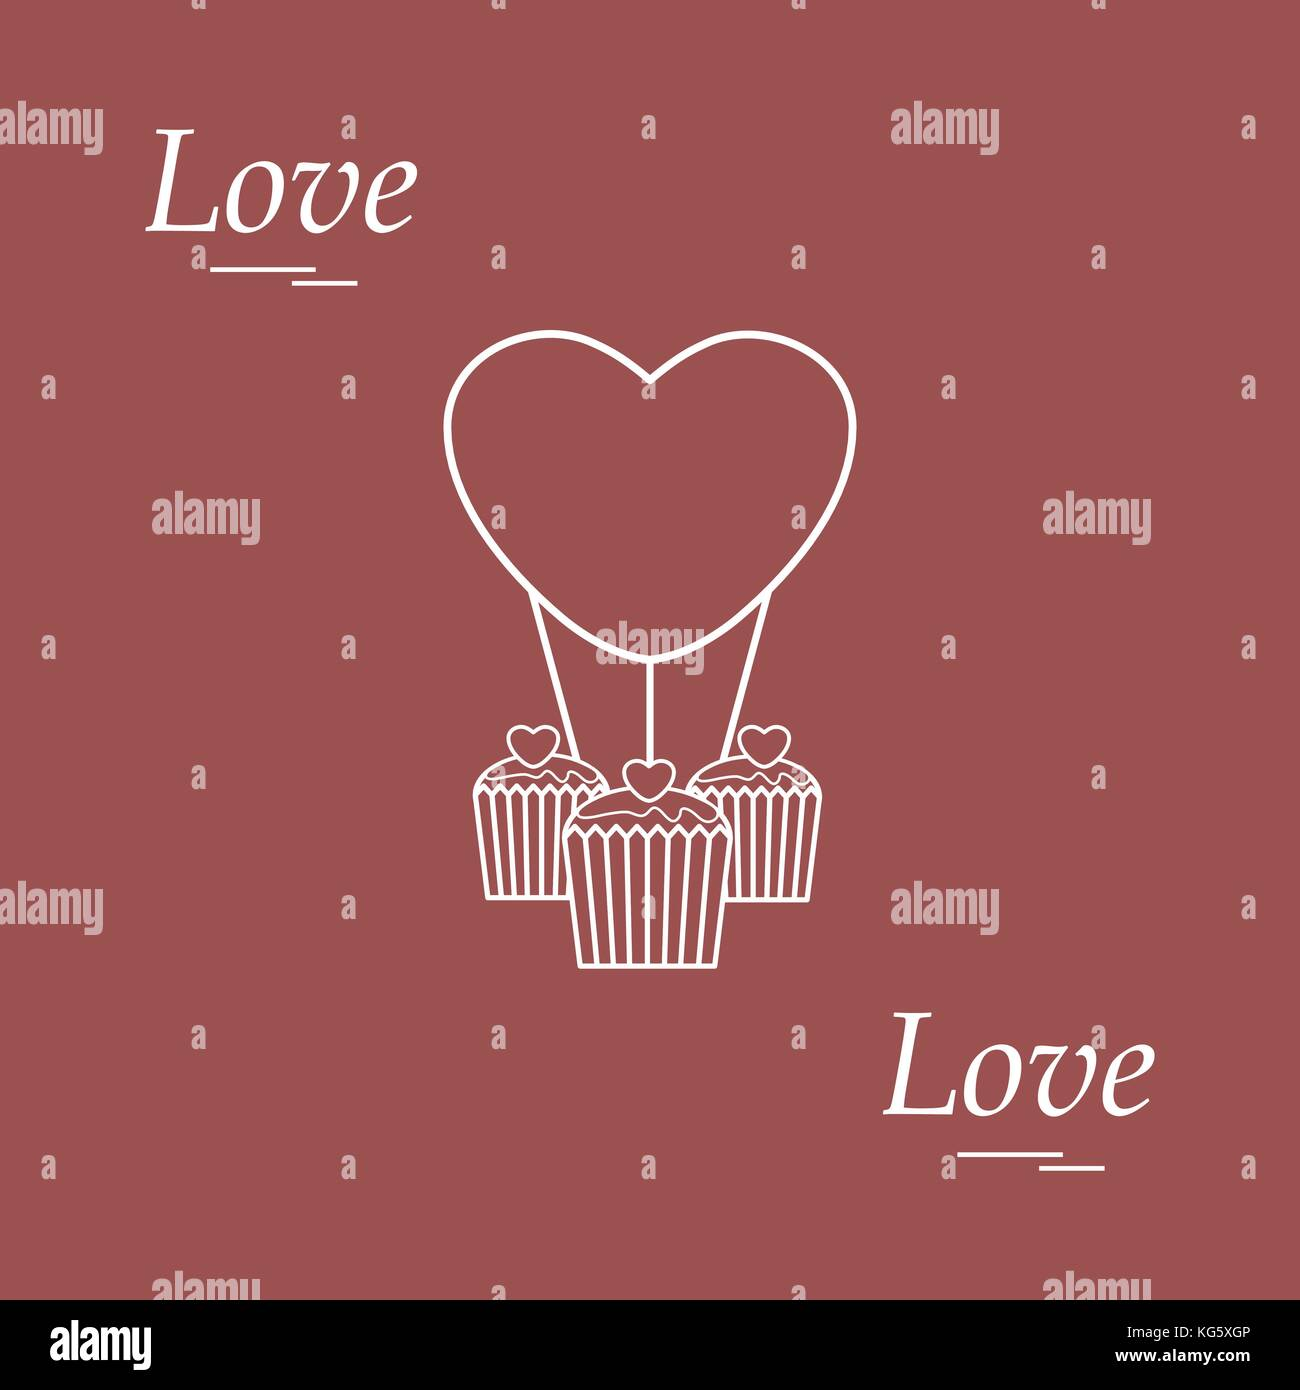 Cute vector illustration of love symbols heart air balloon icon cute vector illustration of love symbols heart air balloon icon and three cupcakes romantic collection design for banner flyer poster or print buycottarizona Images